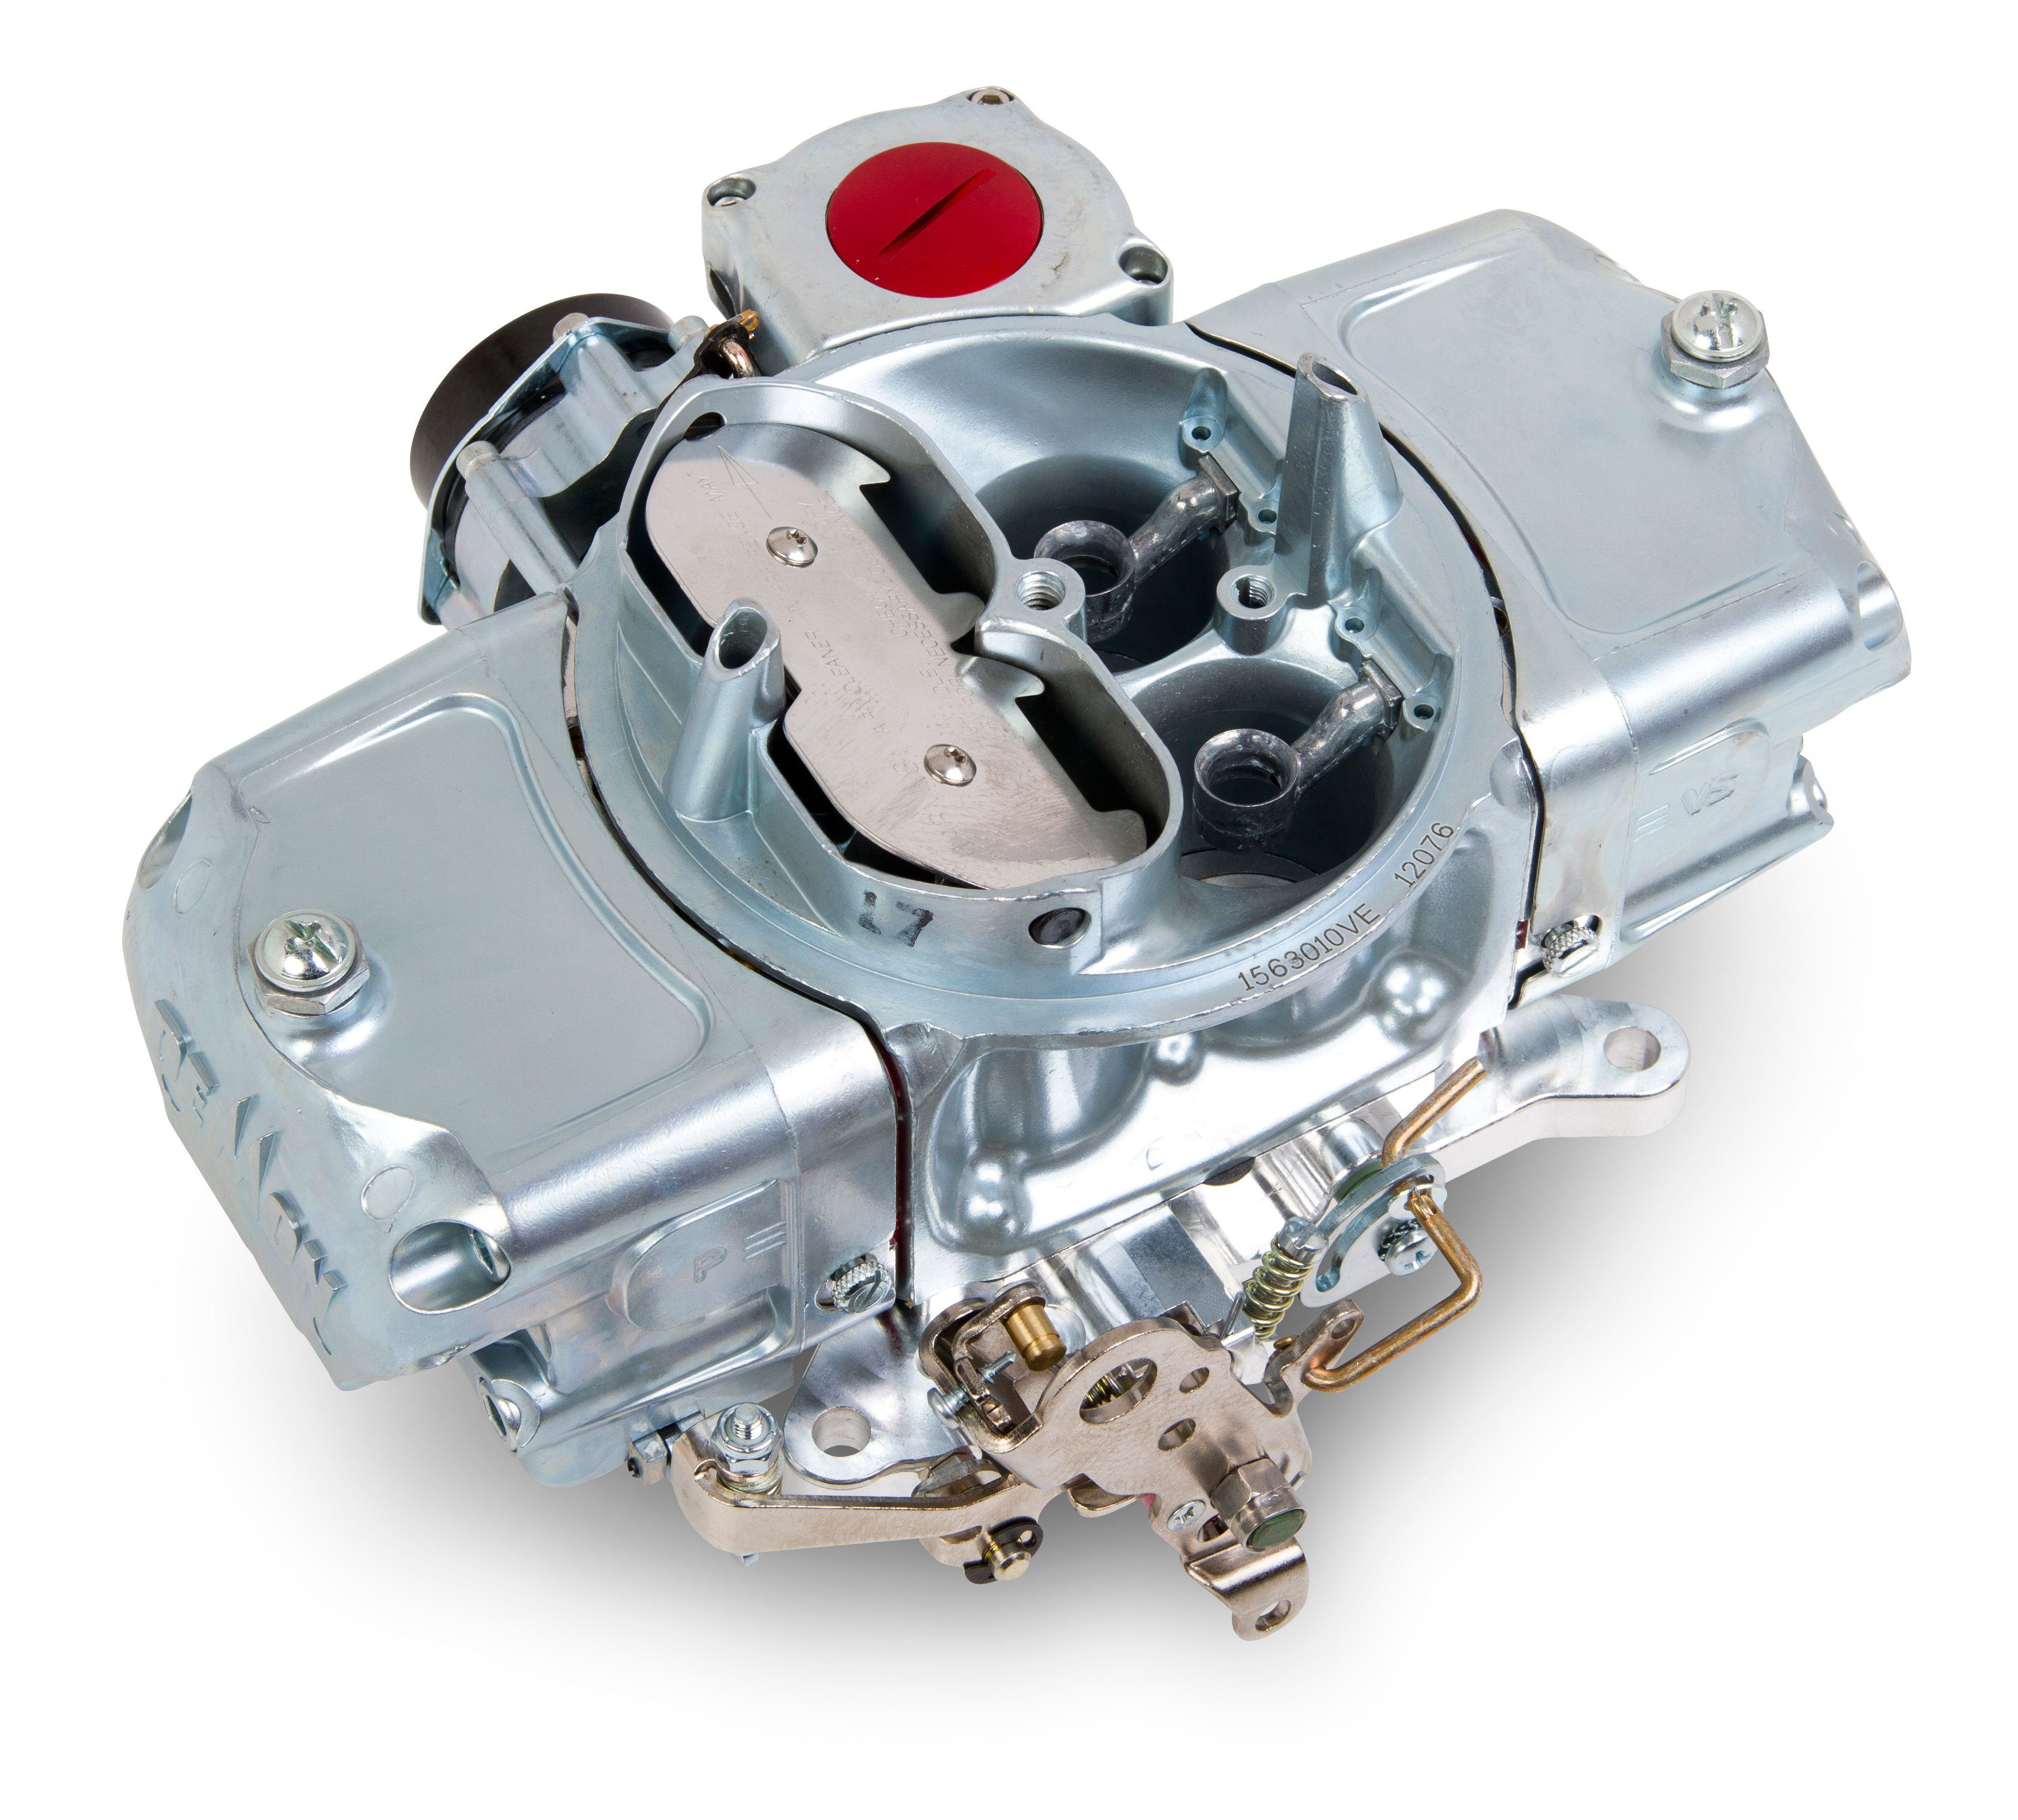 1563010vev2 speed demon holley performance products Barry Grant Carburetors at soozxer.org